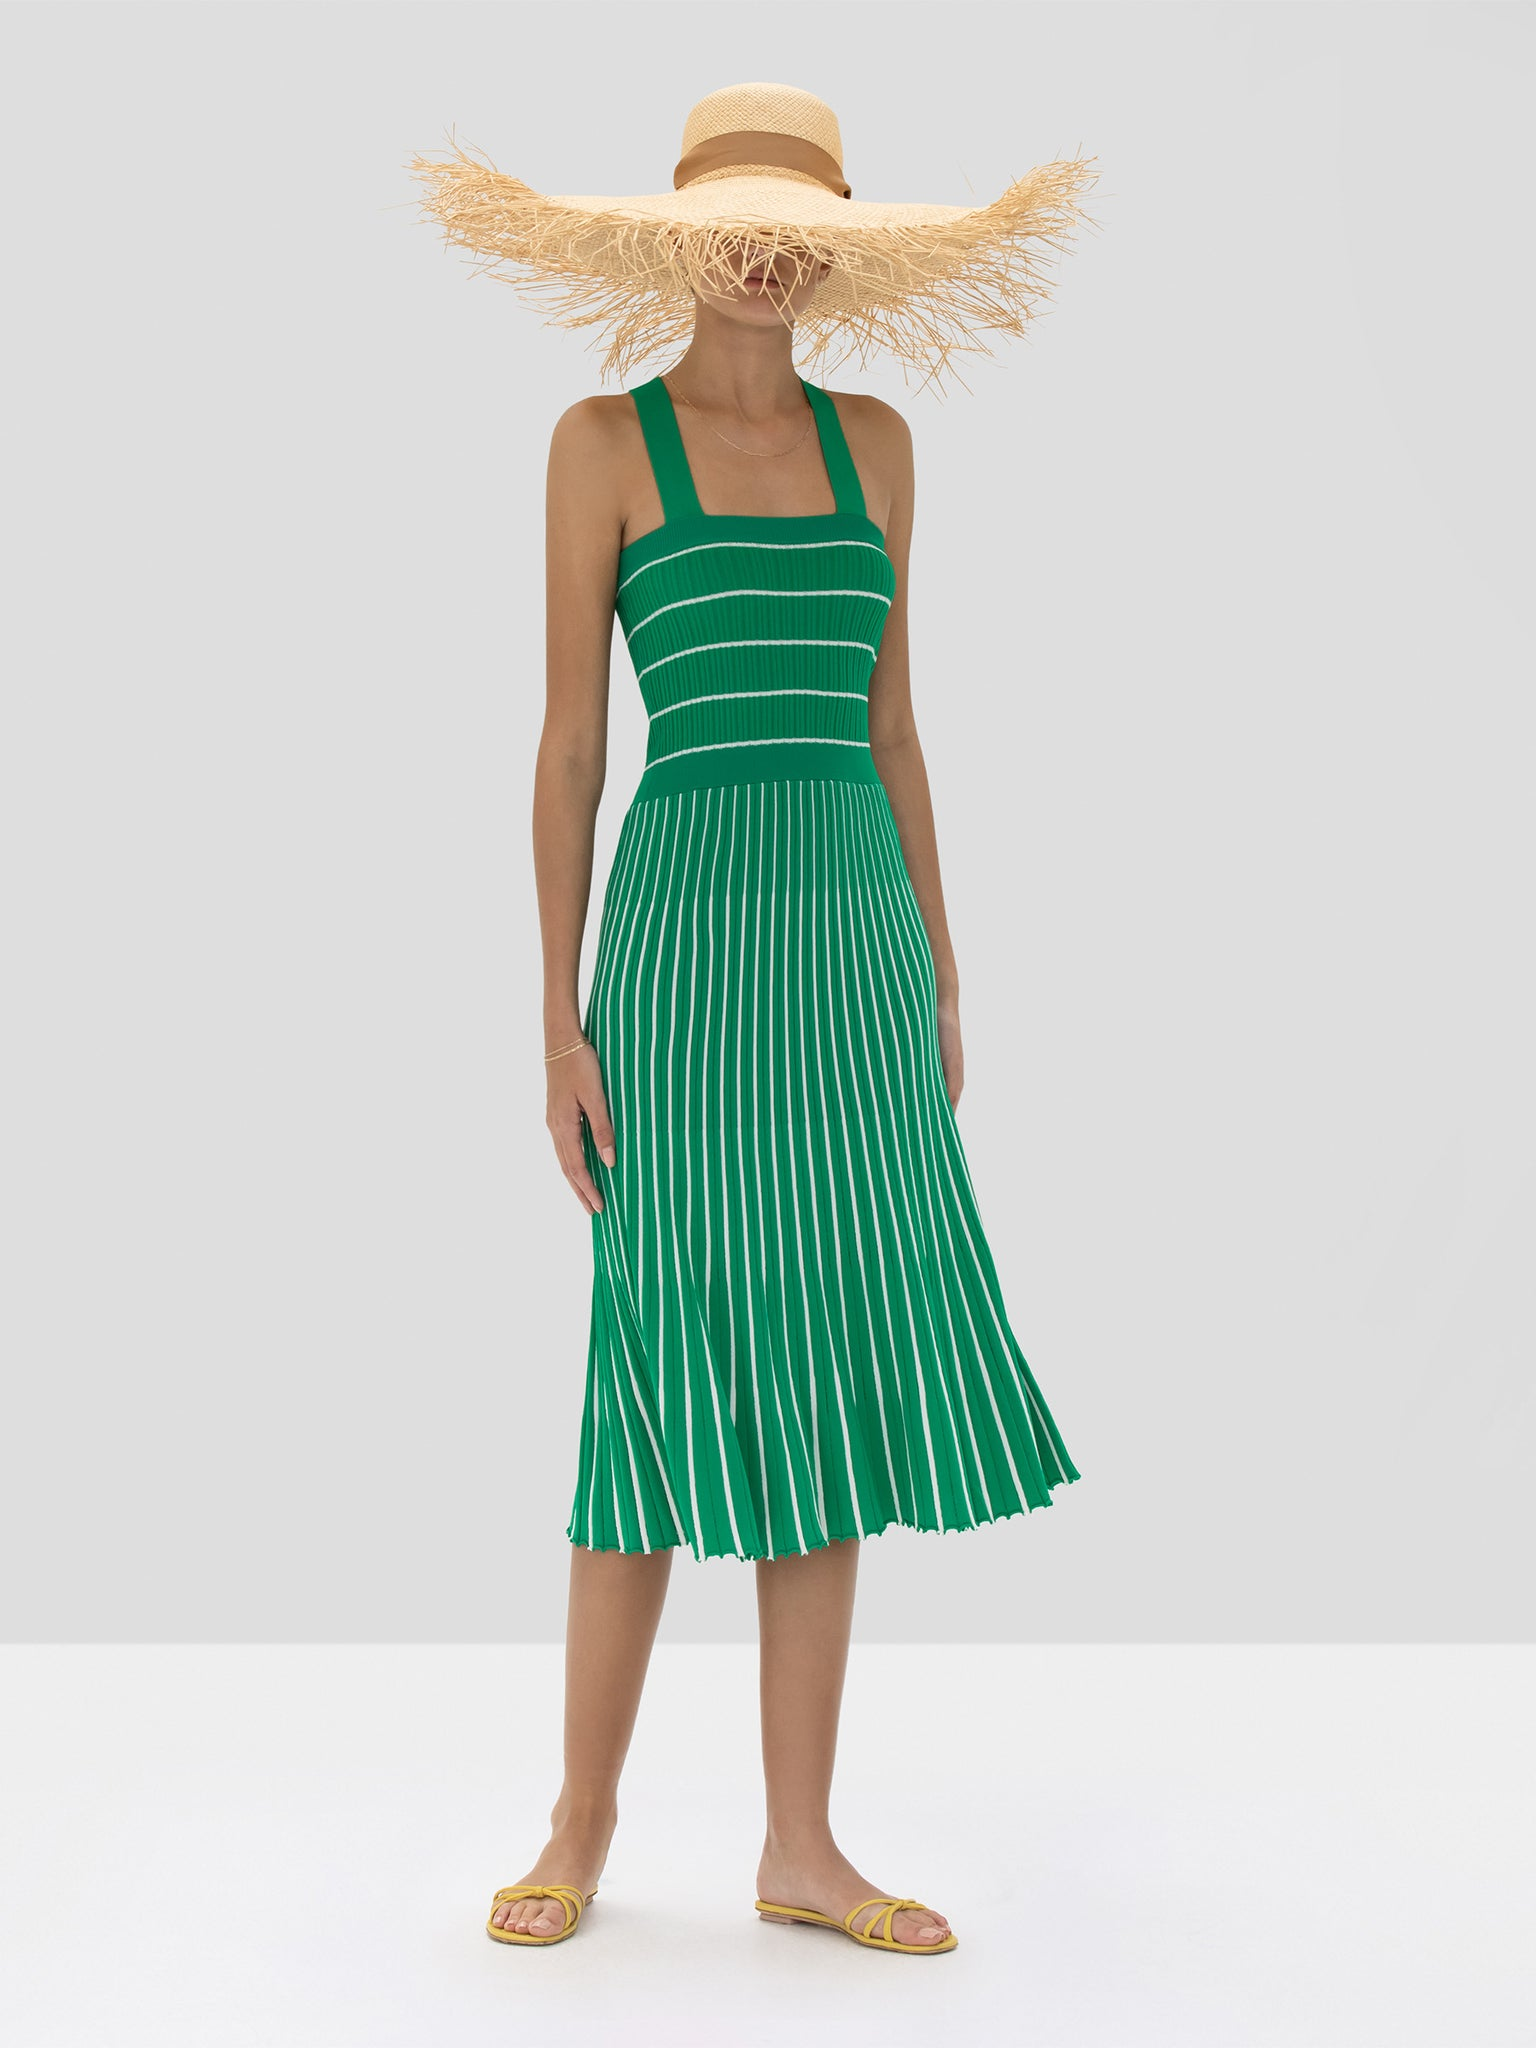 Alexis Bess Dress in Green and White Stripes from the Spring Summer 2020 Collection